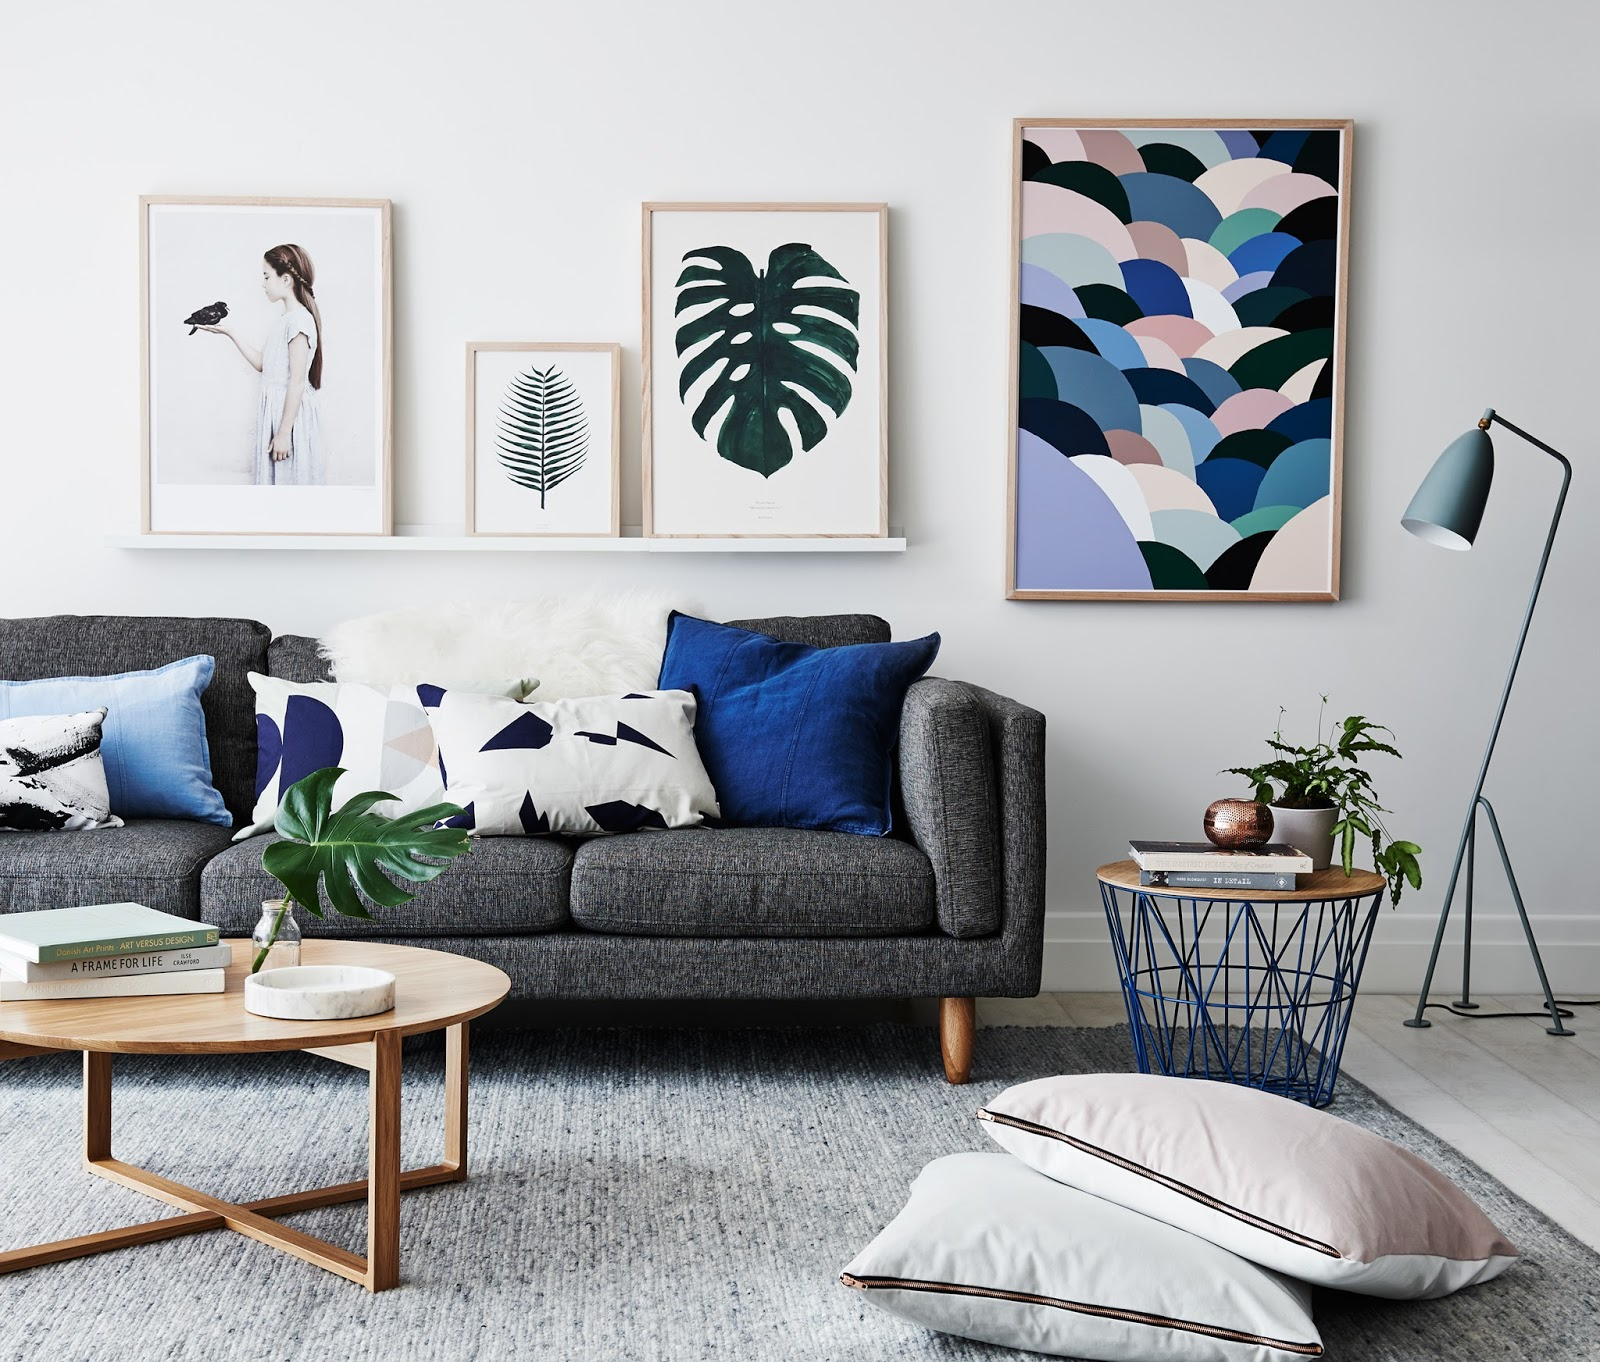 living room ideas pinterest layouts for small apartments what s hot on 5 scandinavian rooms 8